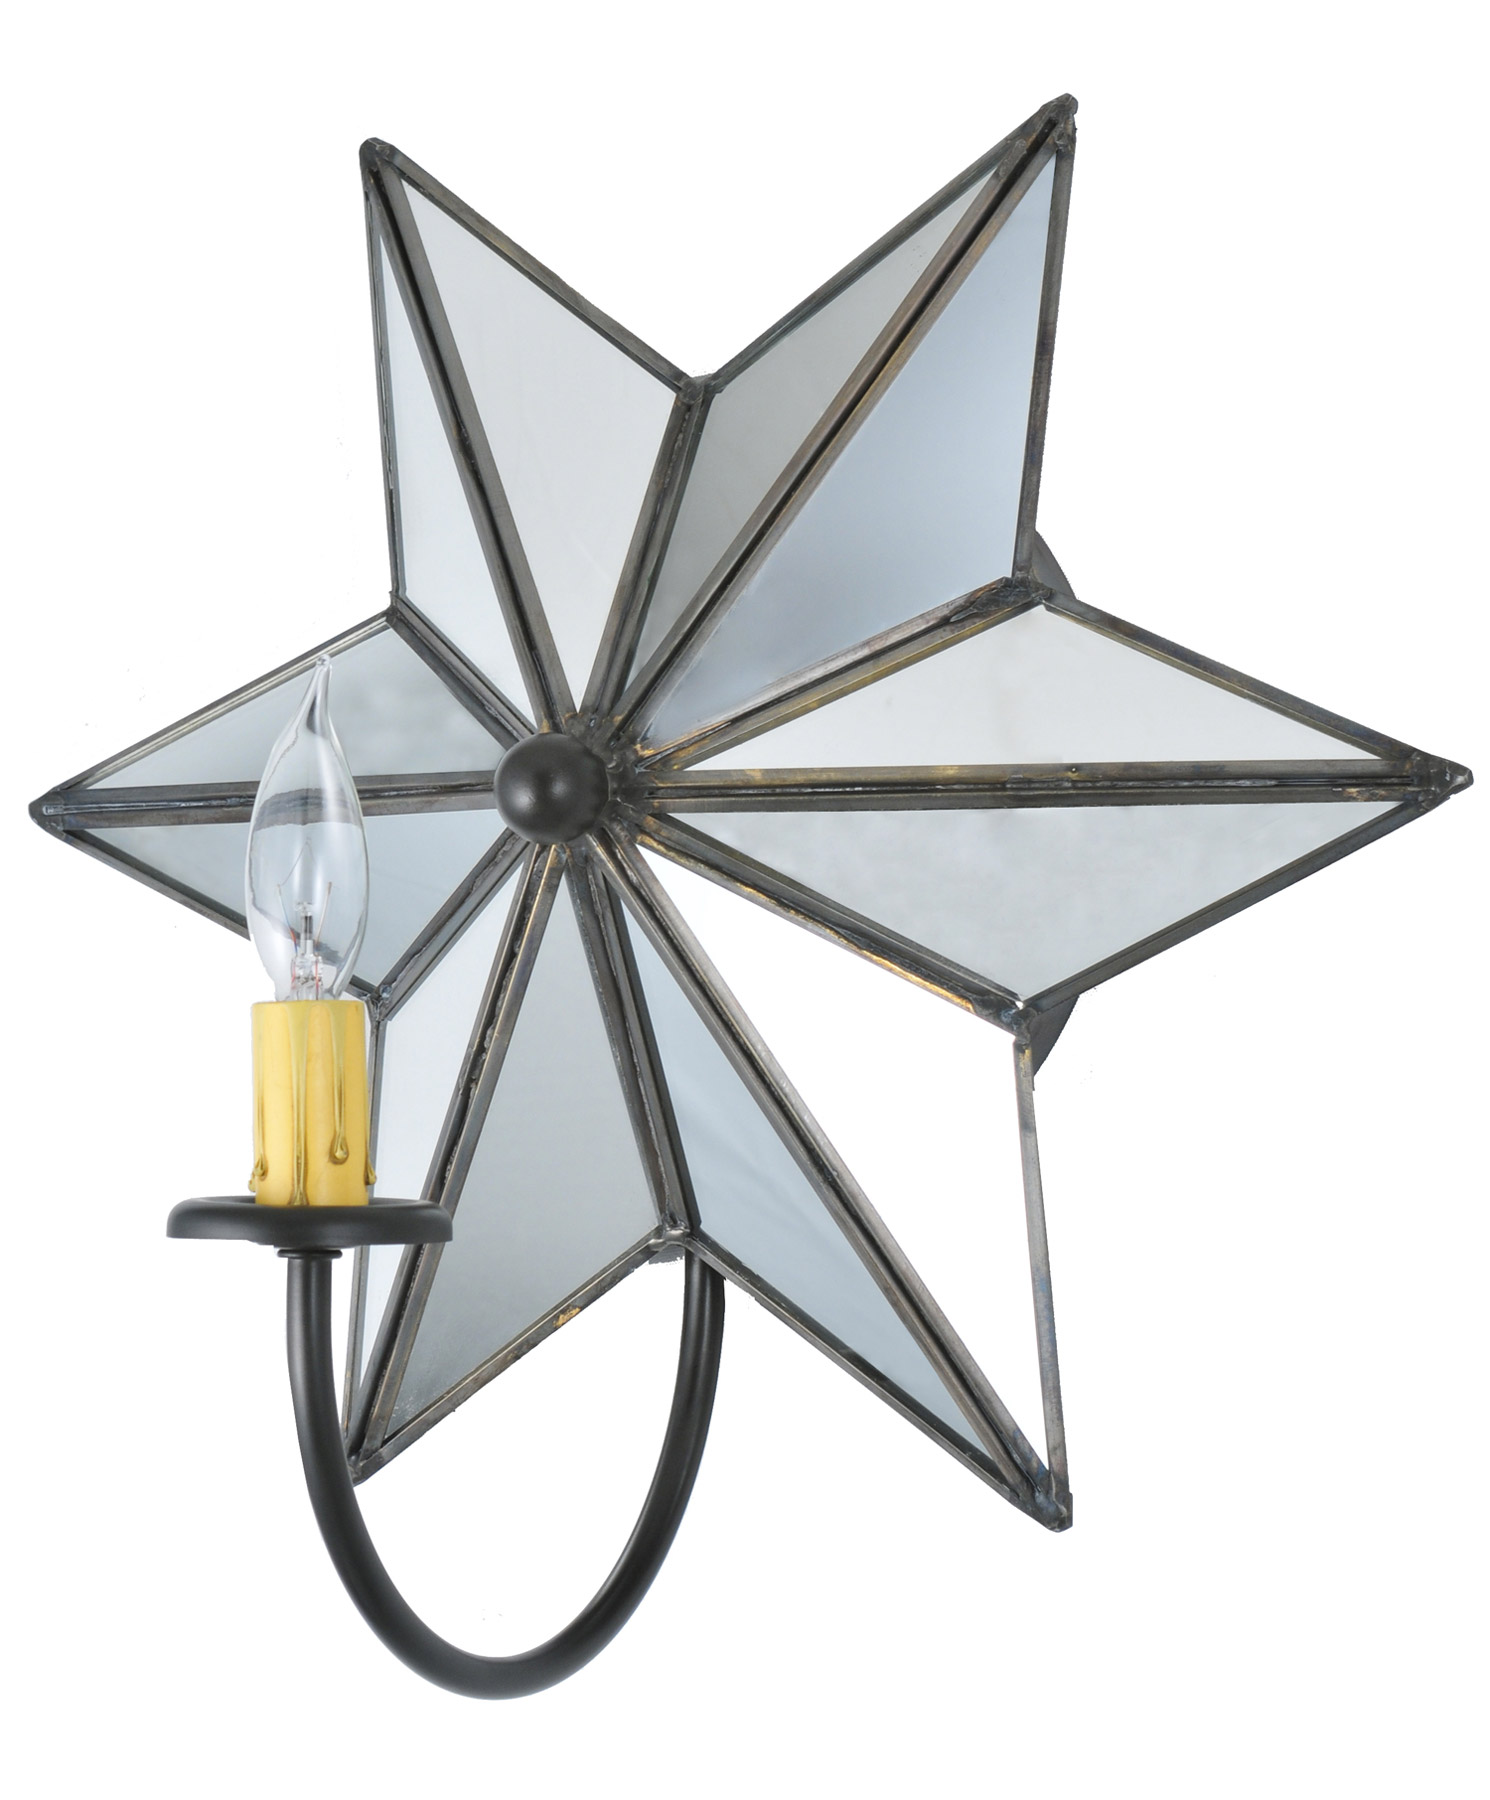 Wall Sconce With Star : Meyda 73448 Mirrored Star Wall Sconce